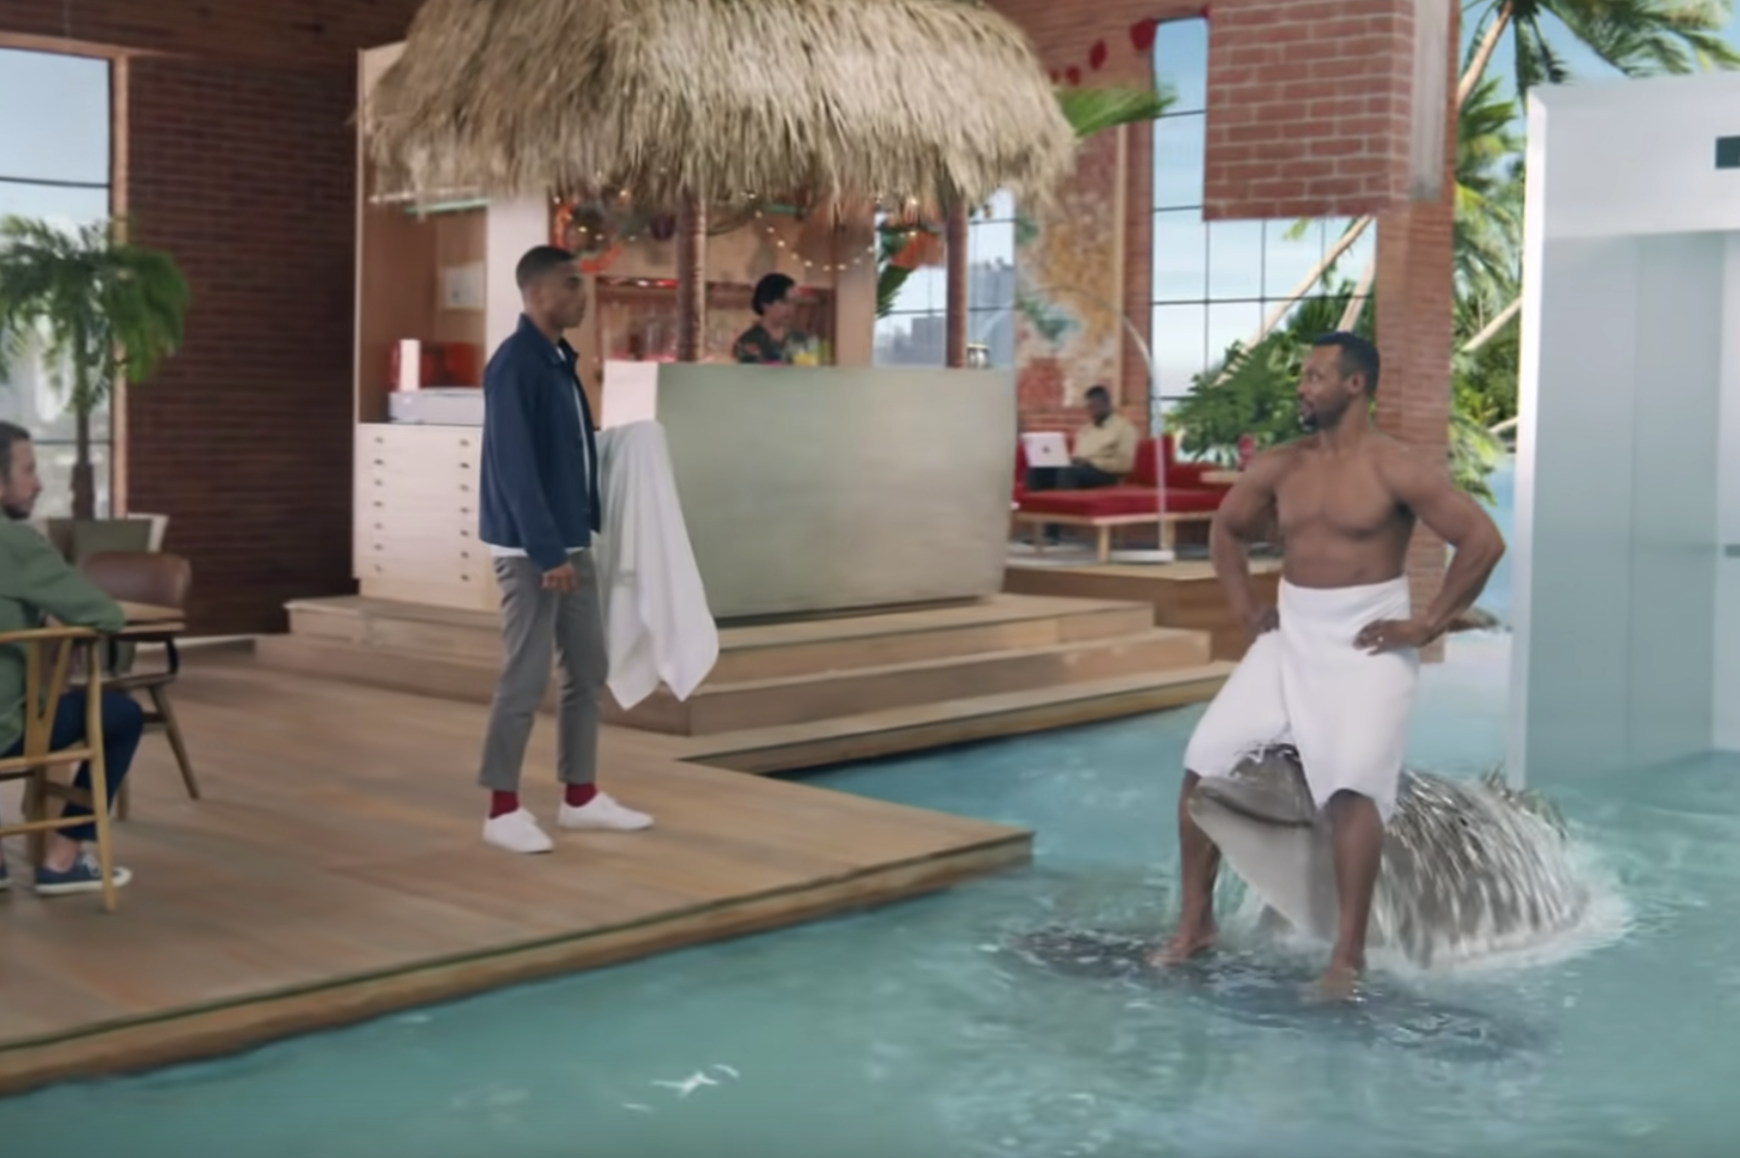 Old Spice's Isaiah Mustafa Offers Fatherly Advice in Spots Serviced by The Lift Mexico